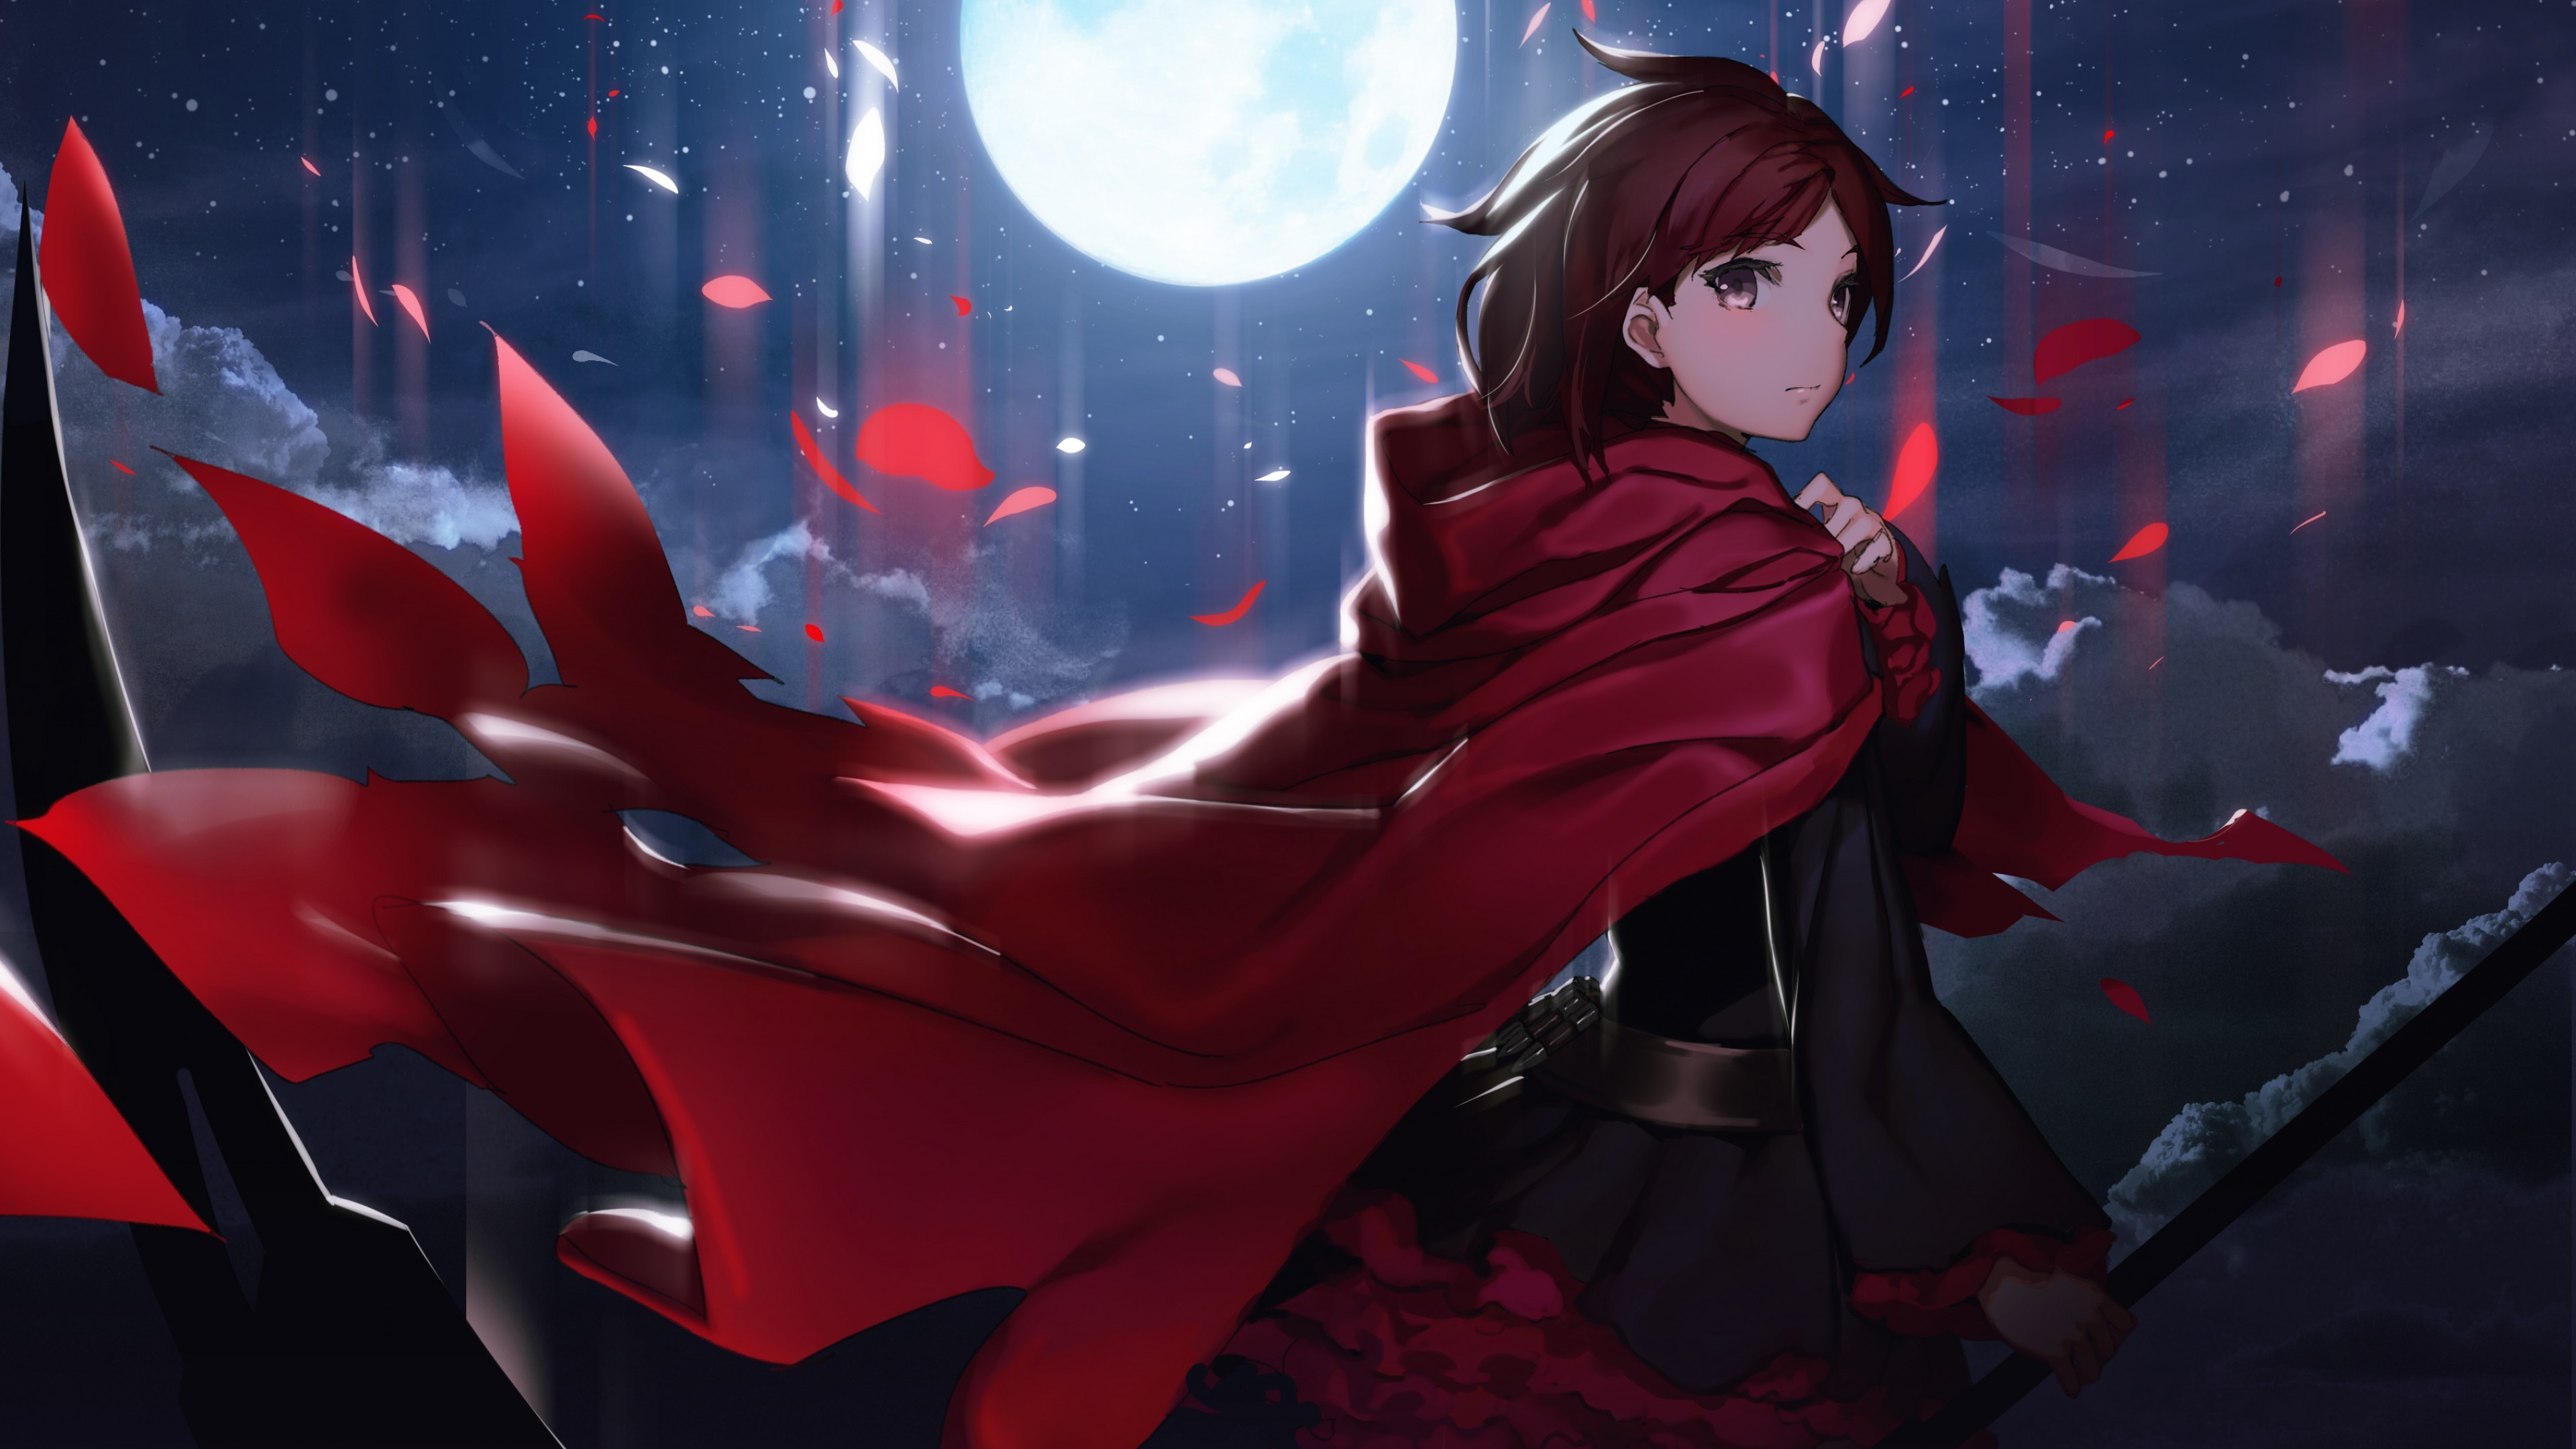 Res: 3840x2160, Anime / Ruby Rose Wallpaper